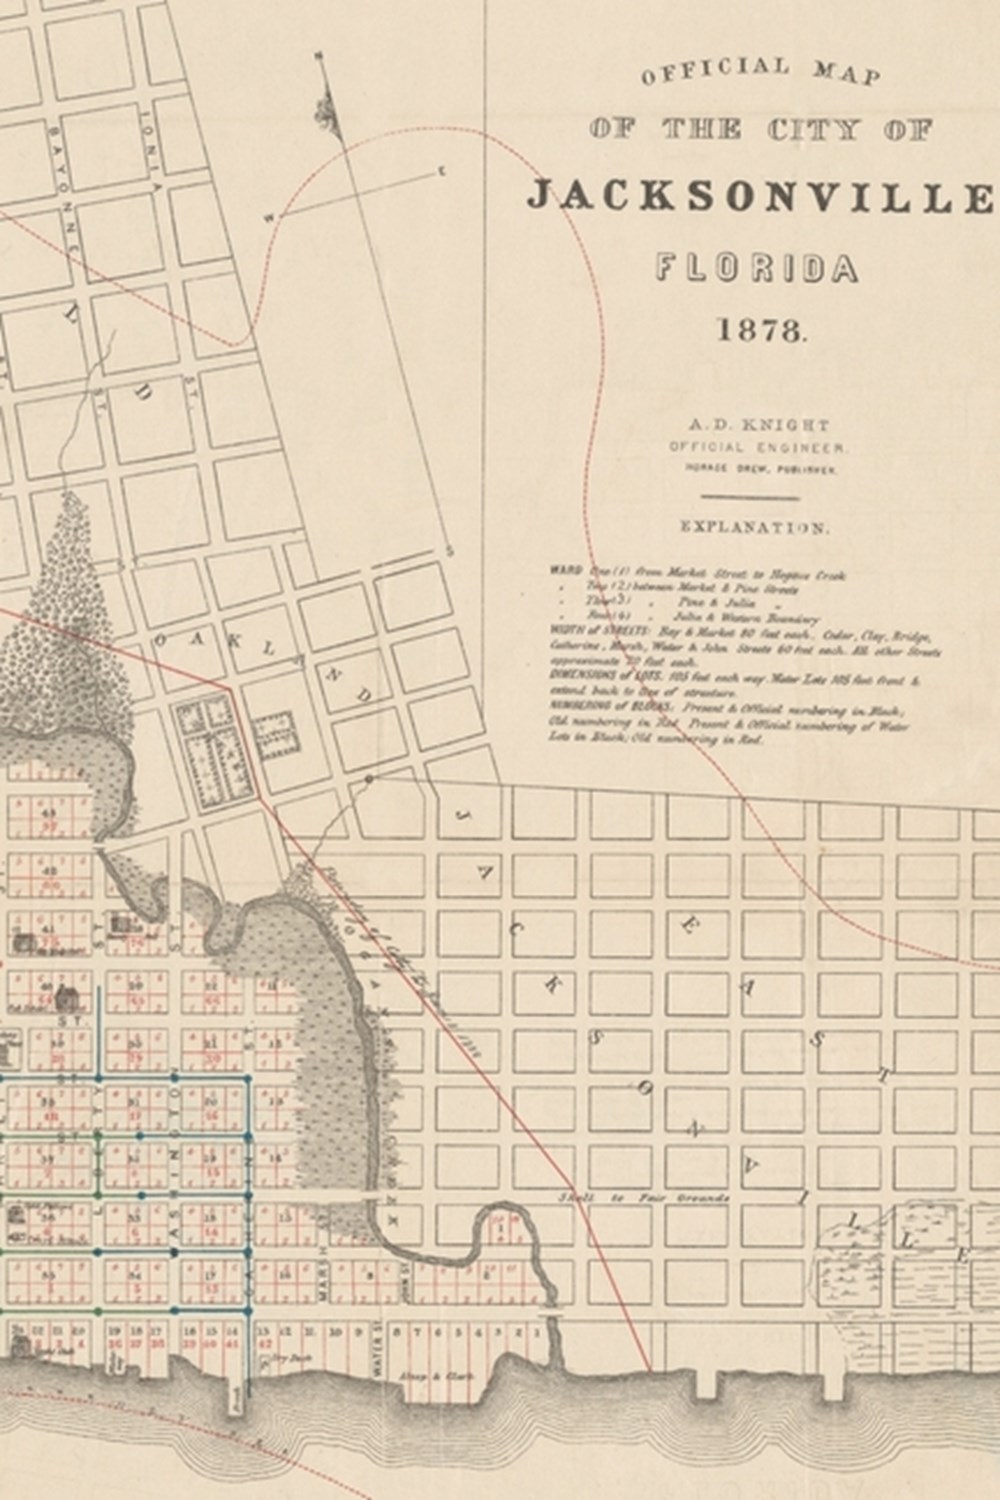 19th Century Map of the City of Jacksonville, Florida - A Poetose Notebook / Journal / Diary (50 pag